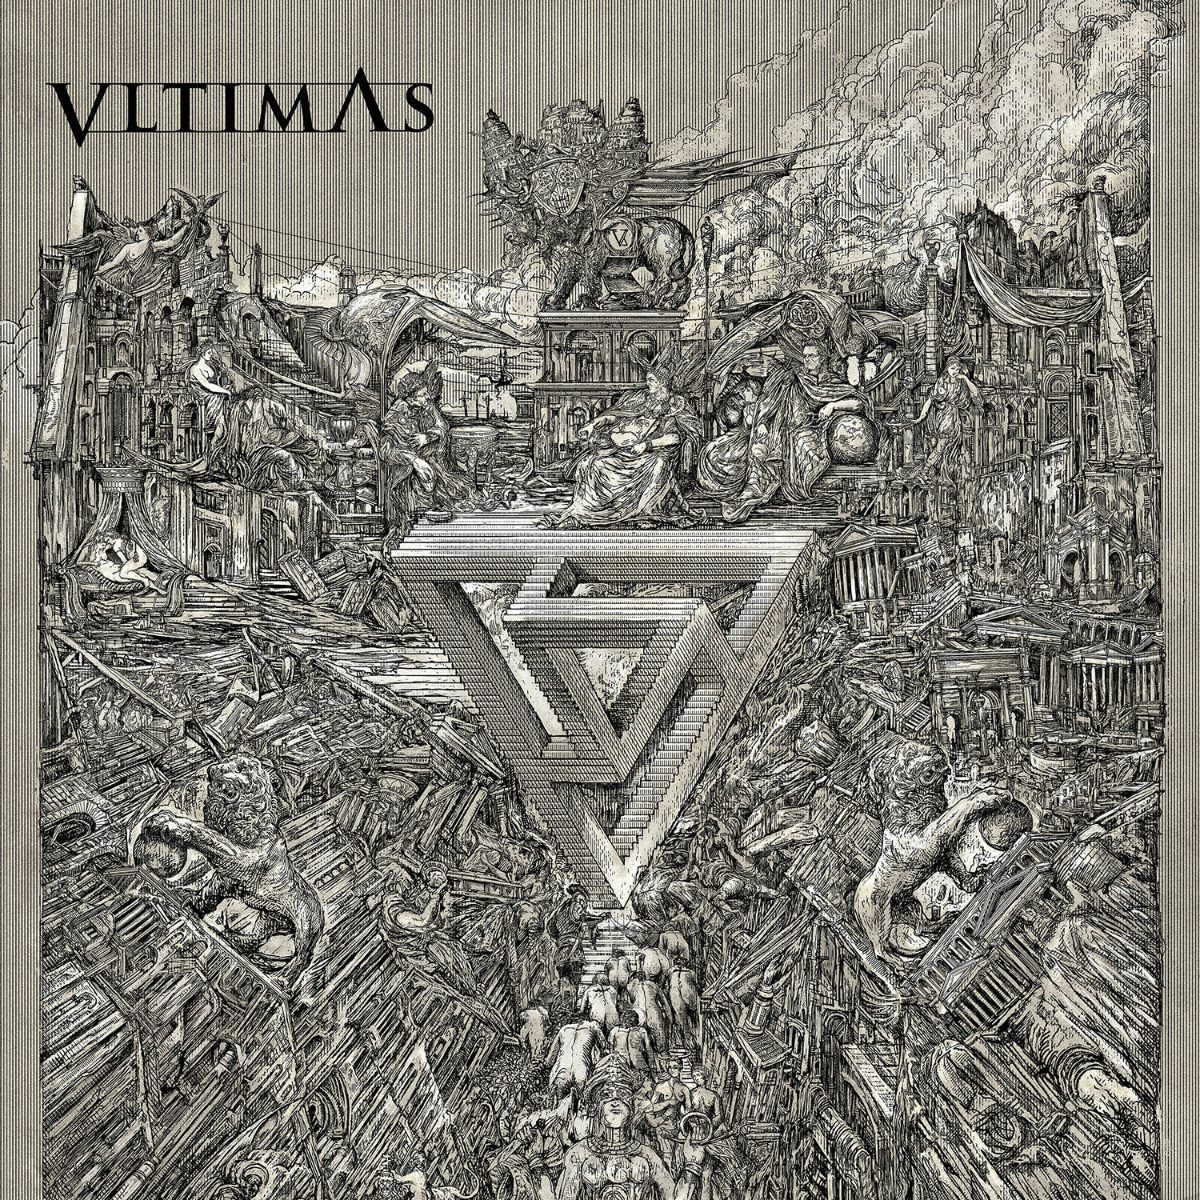 Cover-artwork-vltimas-Bielak